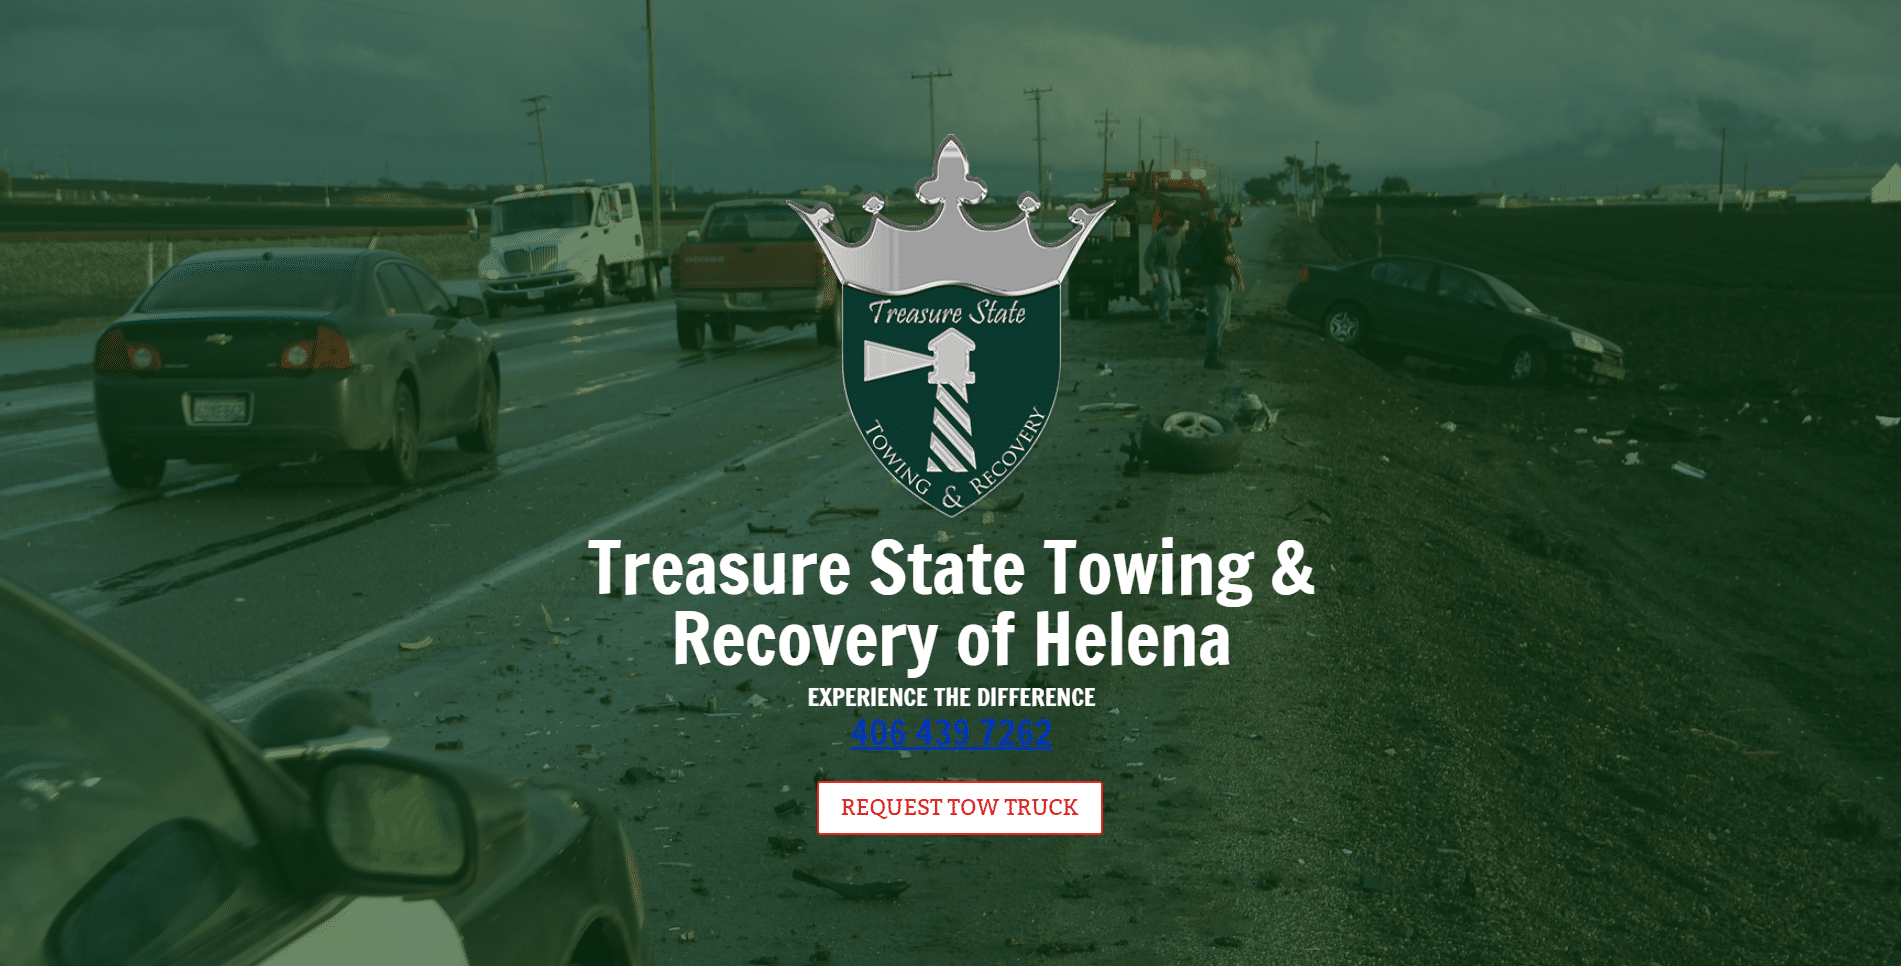 http://treasurestatetowingandrecovery.com